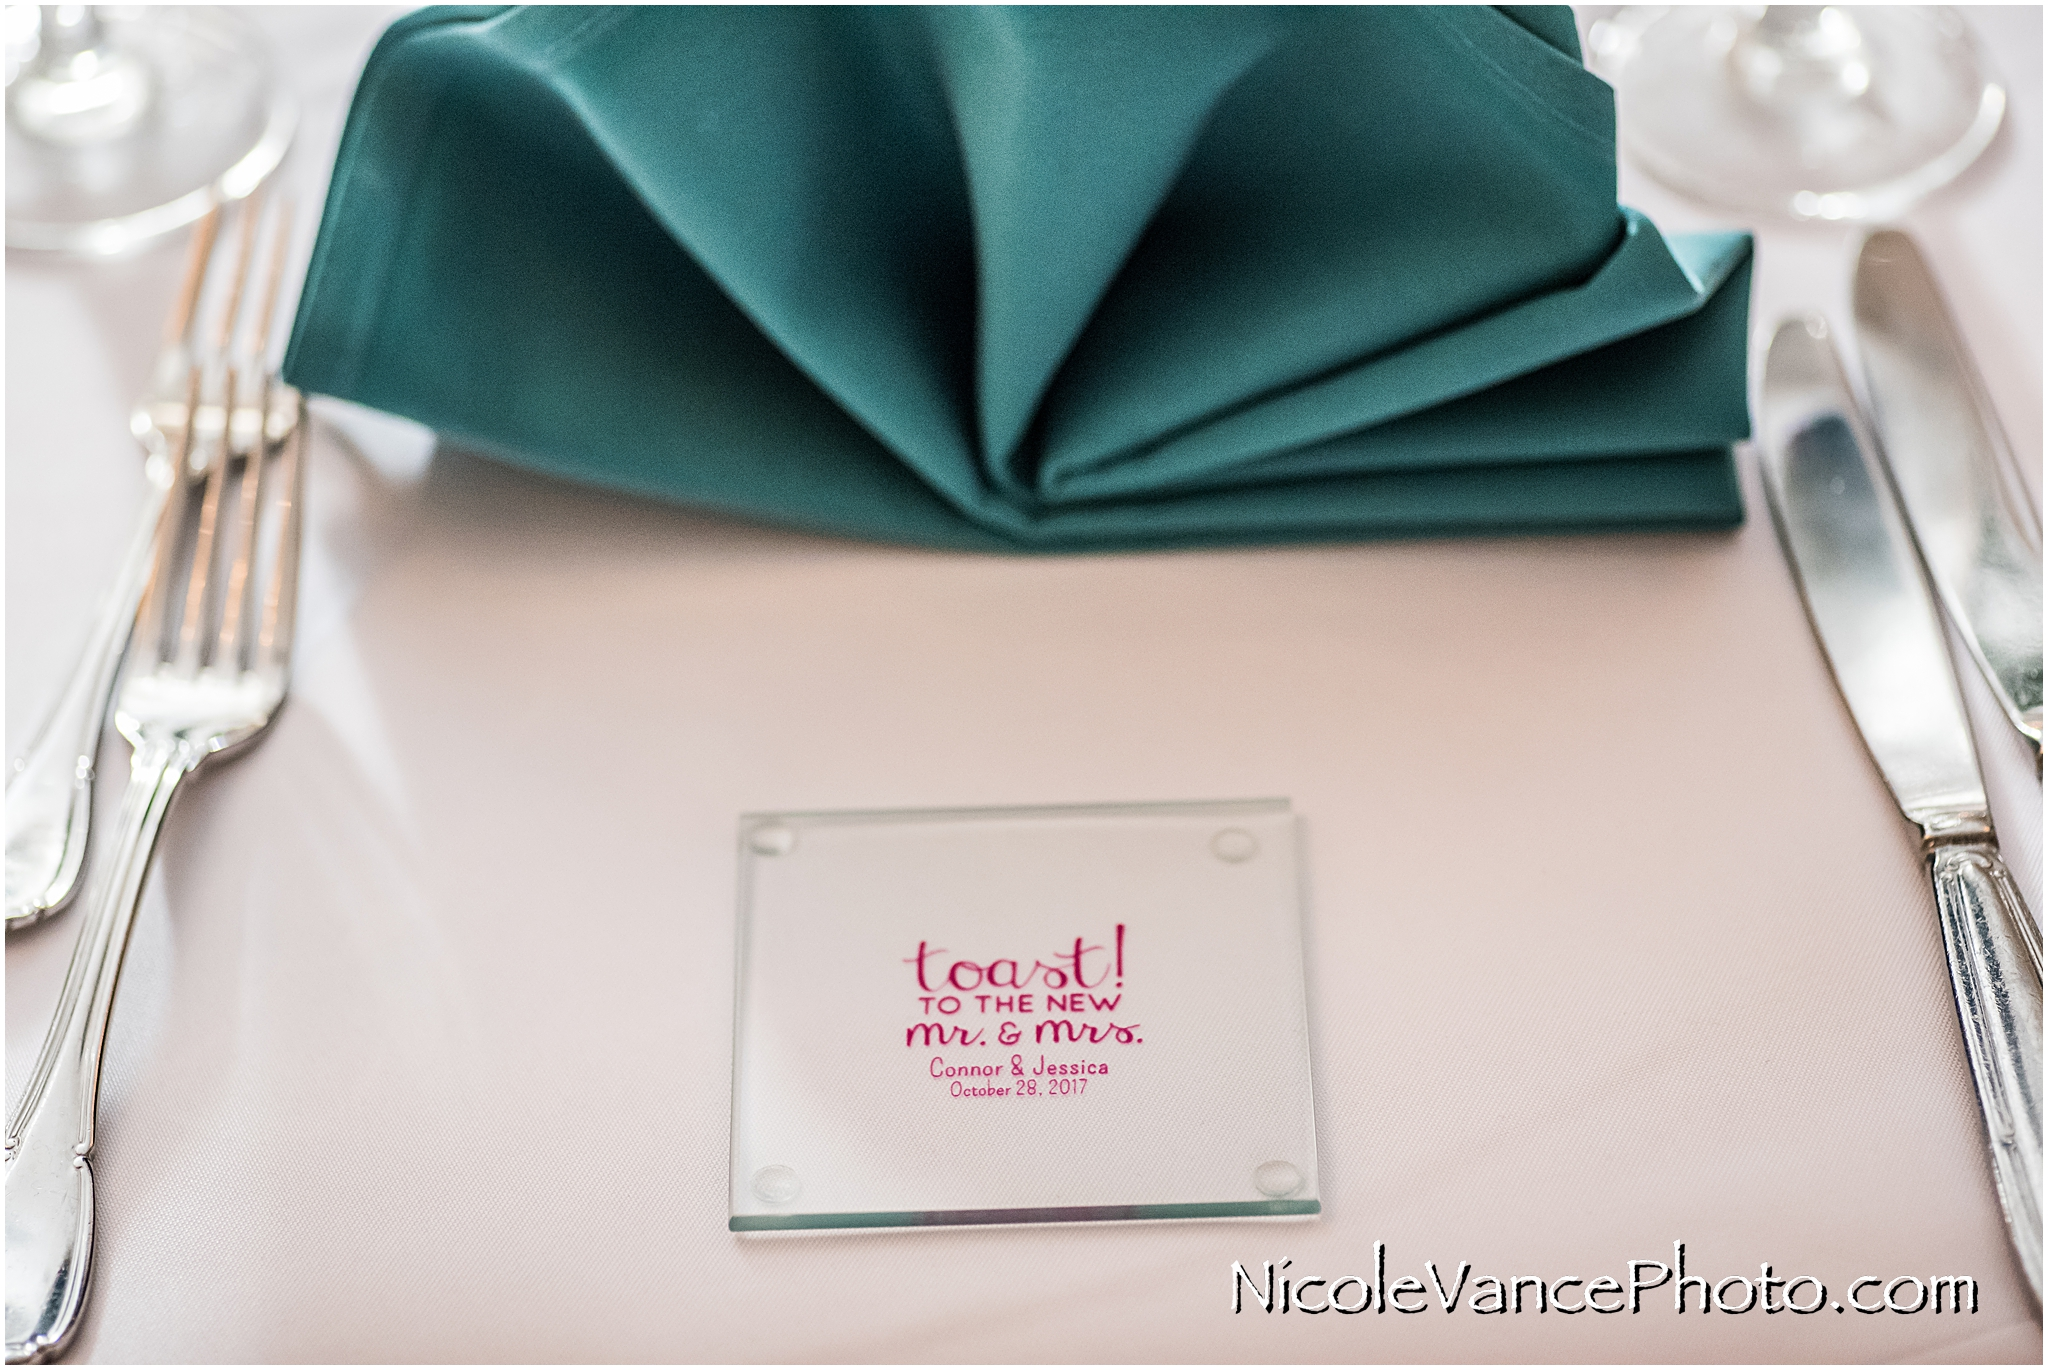 Wedding favors are personalized glass coasters.